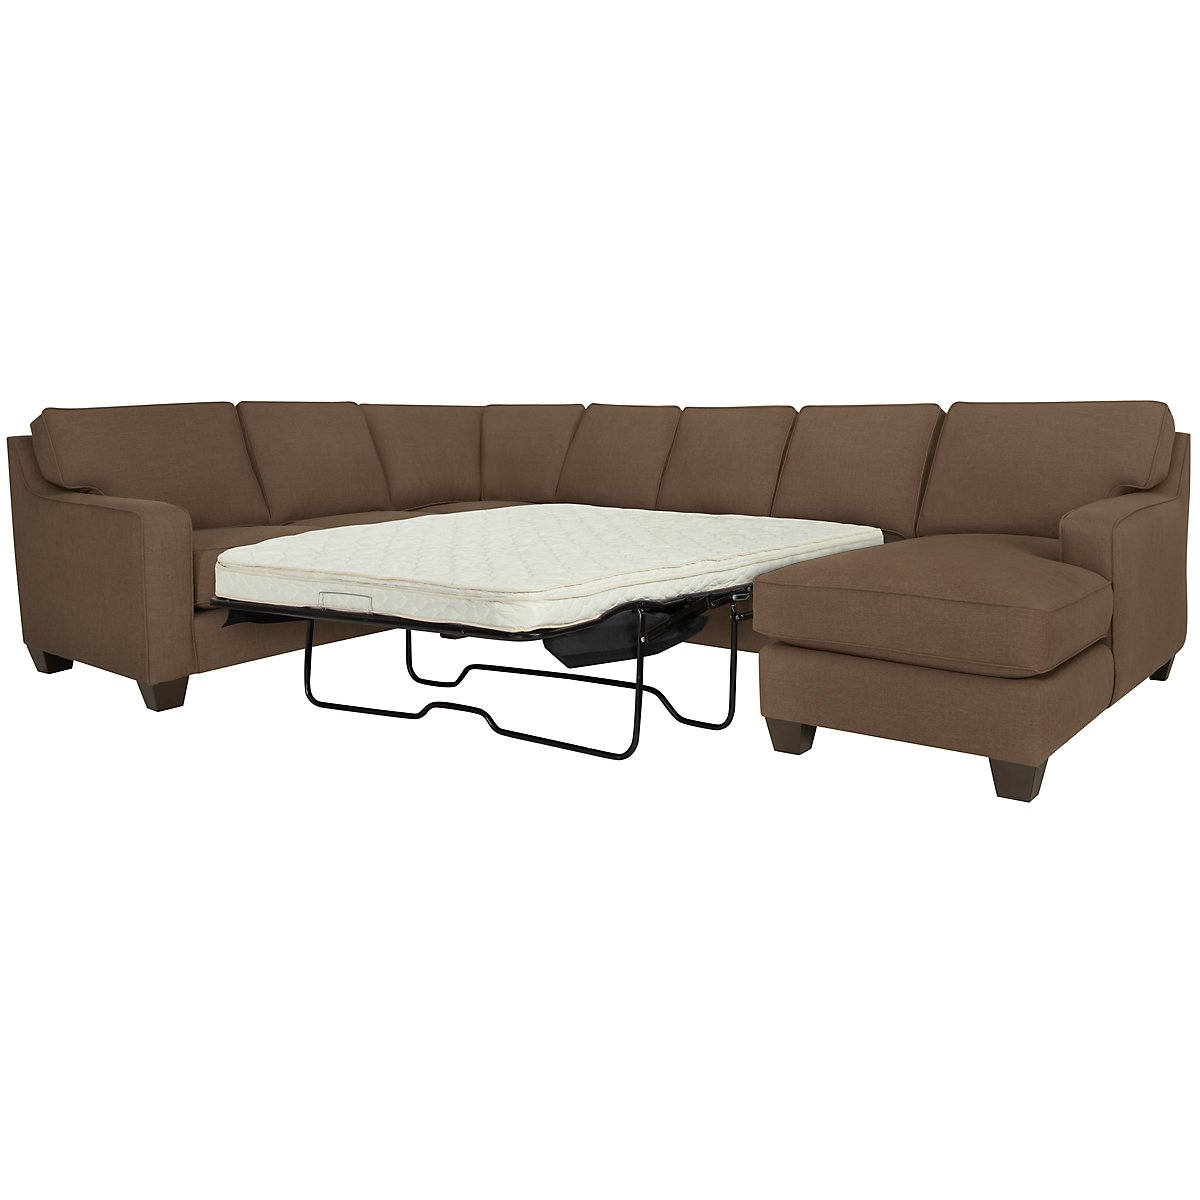 York Dark Brown Fabric Right Chaise Innerspring Sleeper Sectional